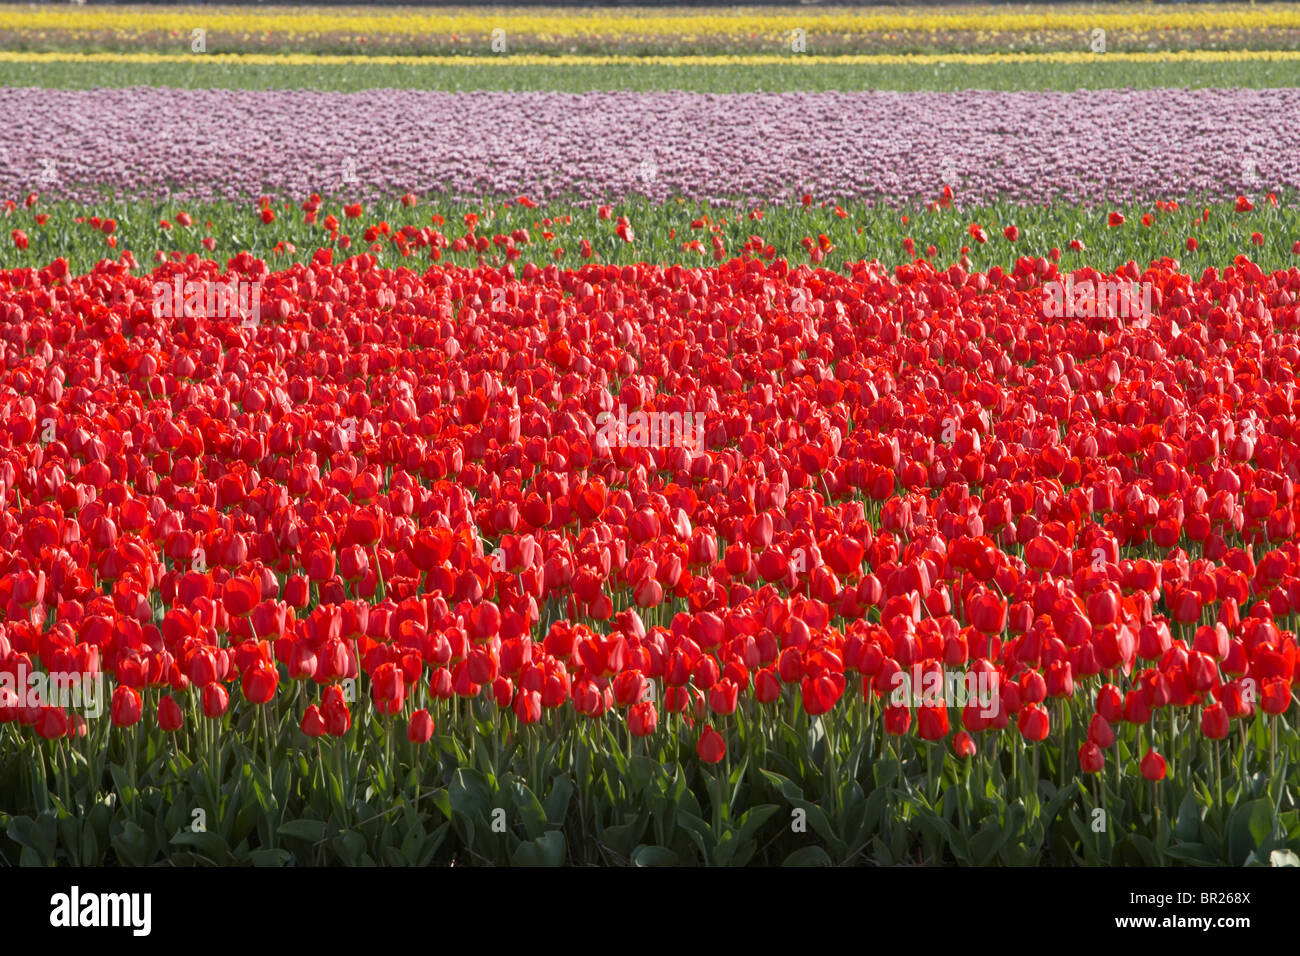 Red tulips in Delf, Netherlands. - Stock Image